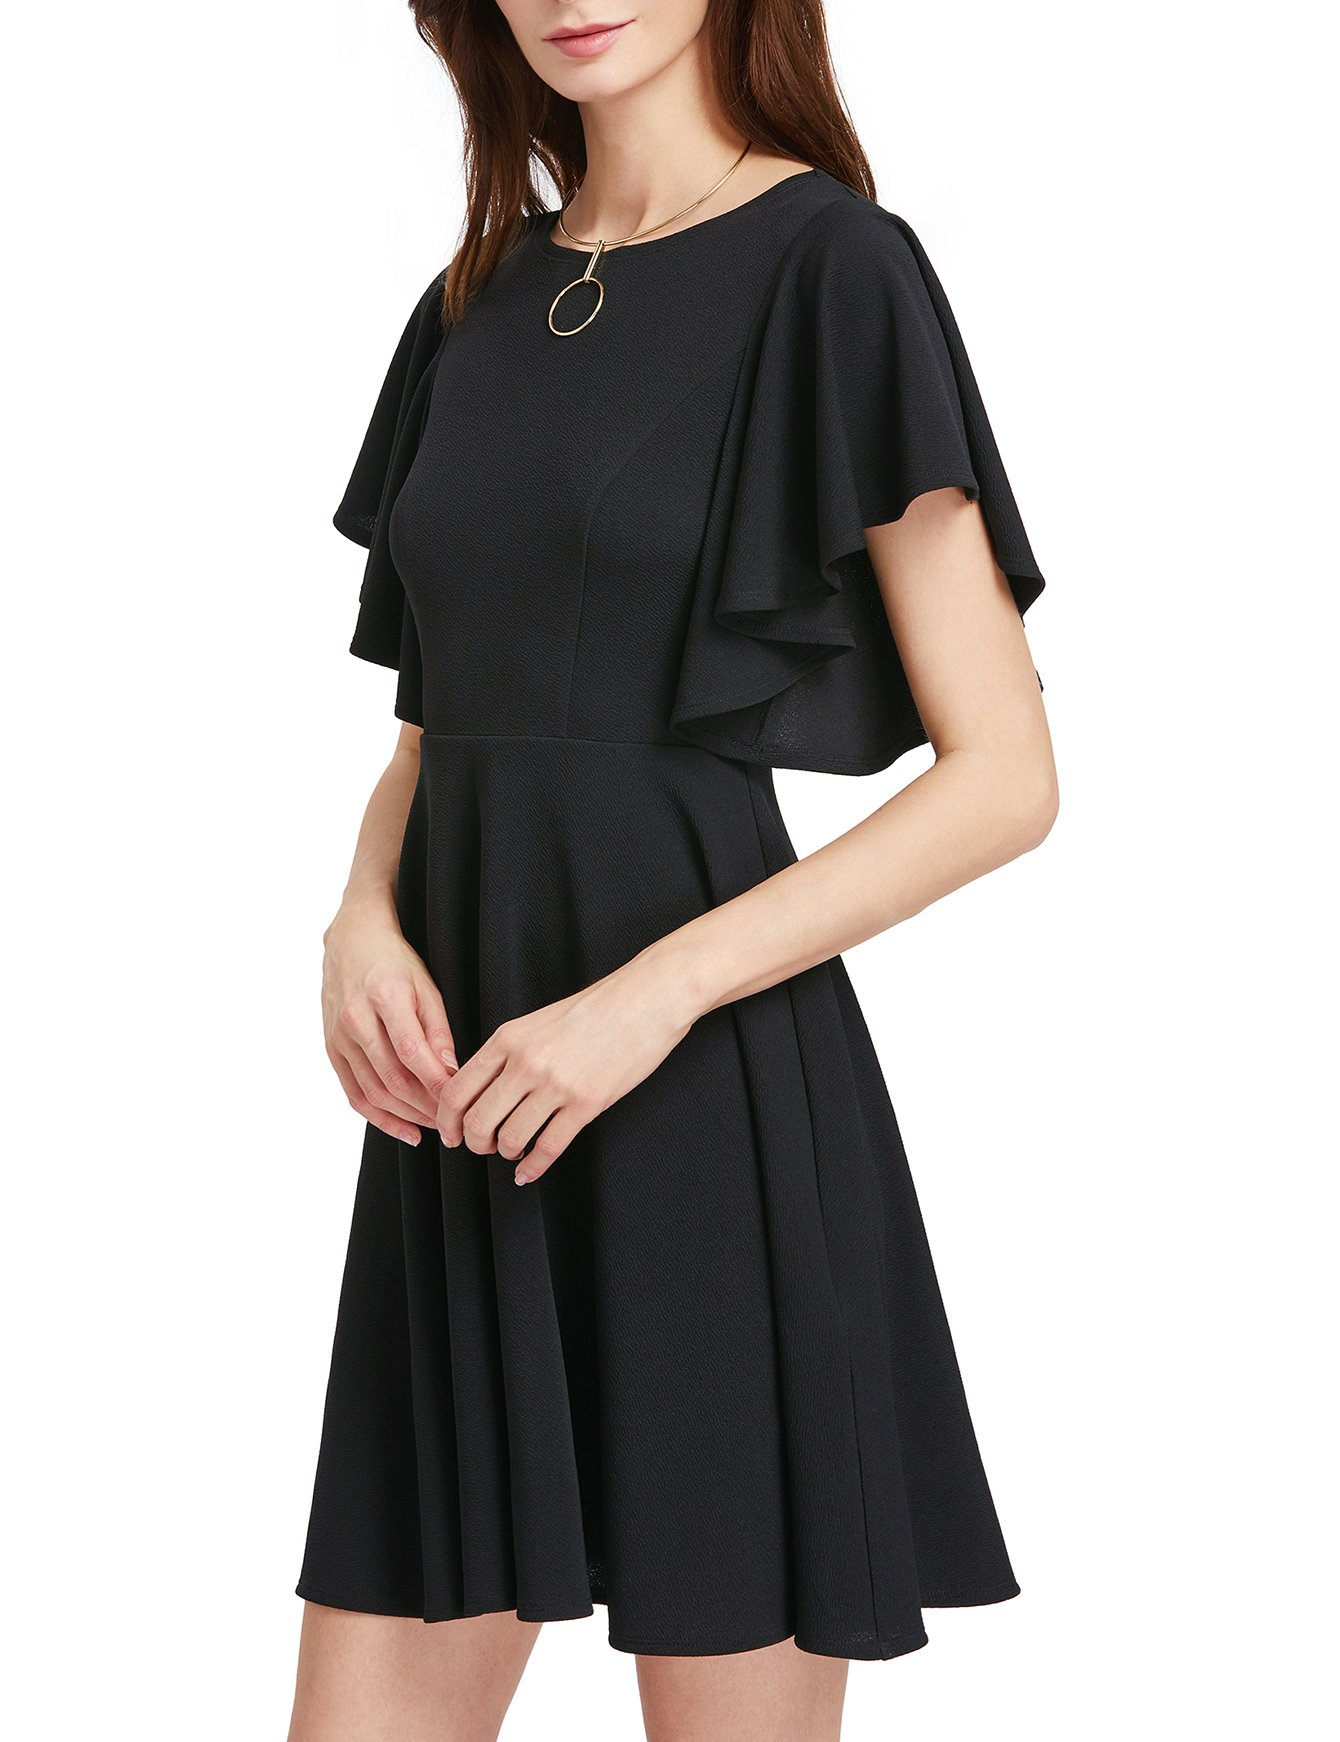 ROMWE Women's Stretchy A Line Swing Flared Skater Cocktail Party Dress Black L by Romwe (Image #4)